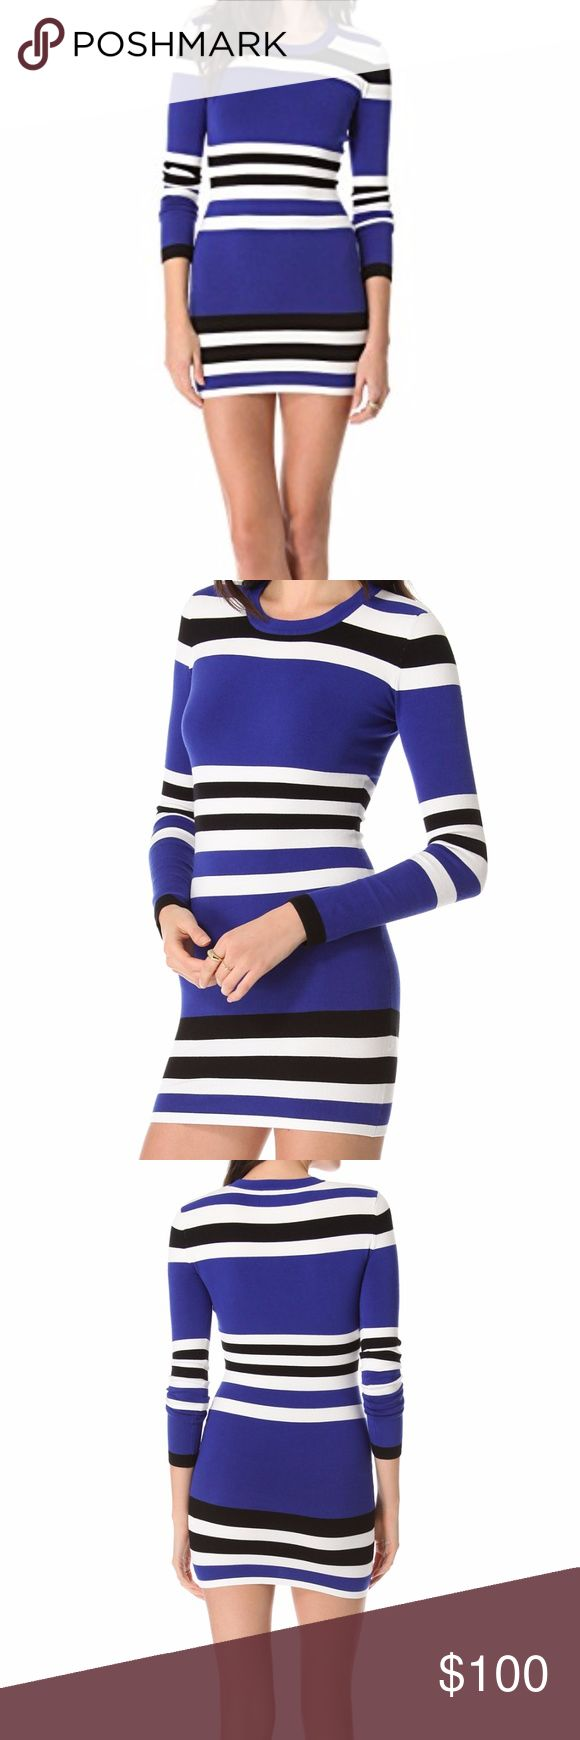 """Torn by Ronny Kobo Blue Striped Dress The """"Cecilia Cruise Stripes"""" dress is from the Torn by Ronny Kobo line and a flirty, formfitting knit trimmed with plush ribbed banding.  I only wore this dress once and it is in perfect condition.  Looks great with a pair of booties and opaque tights!  It is a size small but it fits like a size 2/4 and is made of 78% viscose and 22% spandex. Torn by Ronny Kobo Dresses Long Sleeve"""